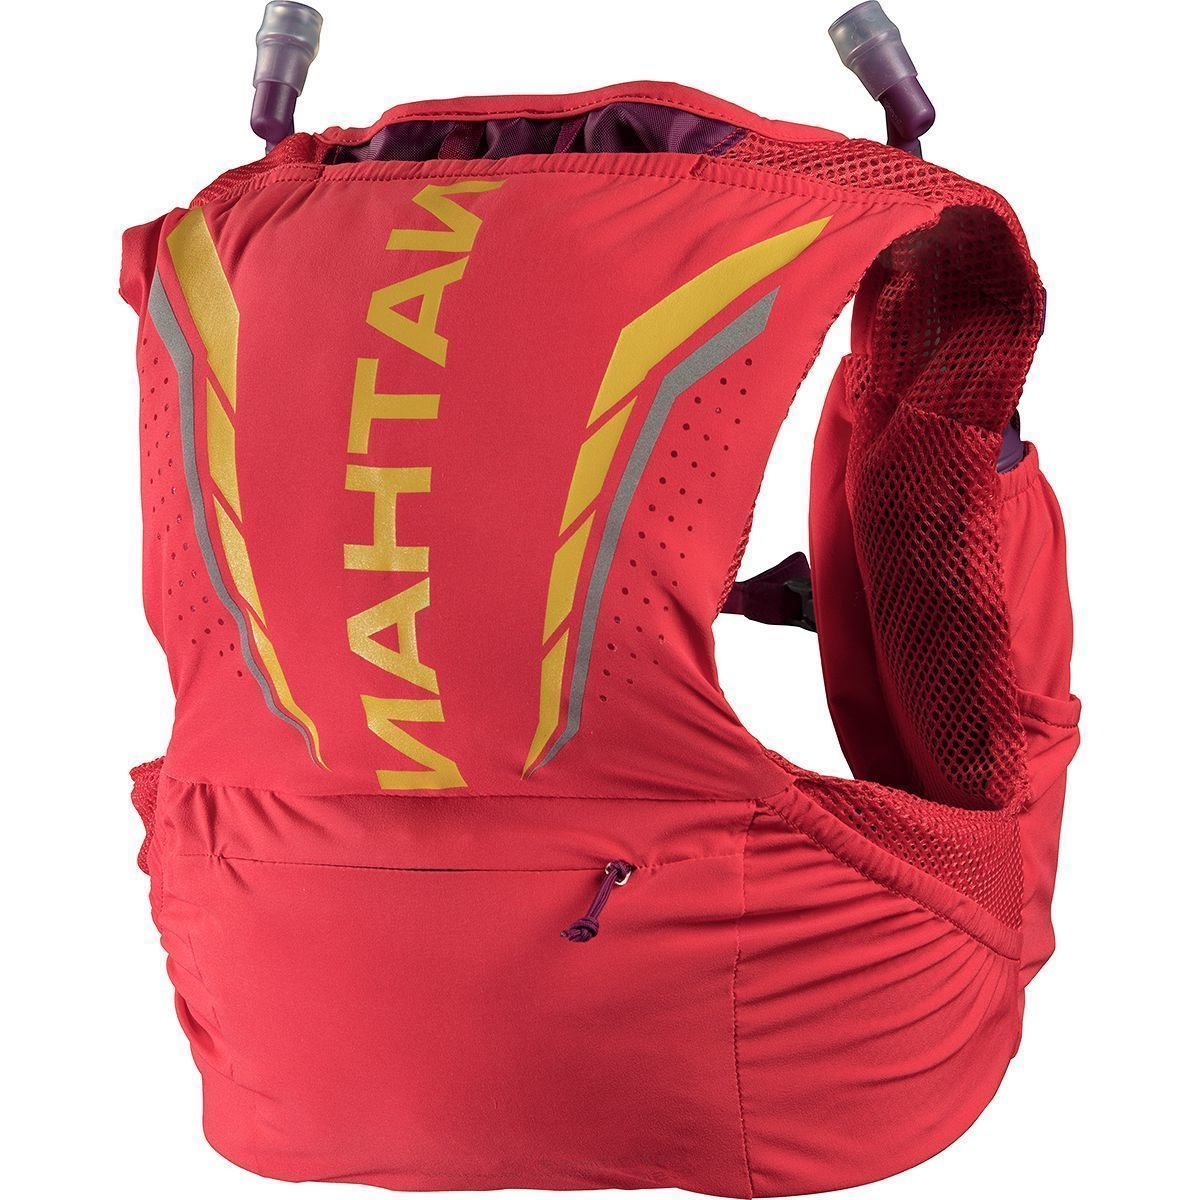 Nathan VaporMag 2.5L Hydration Vest - Women's